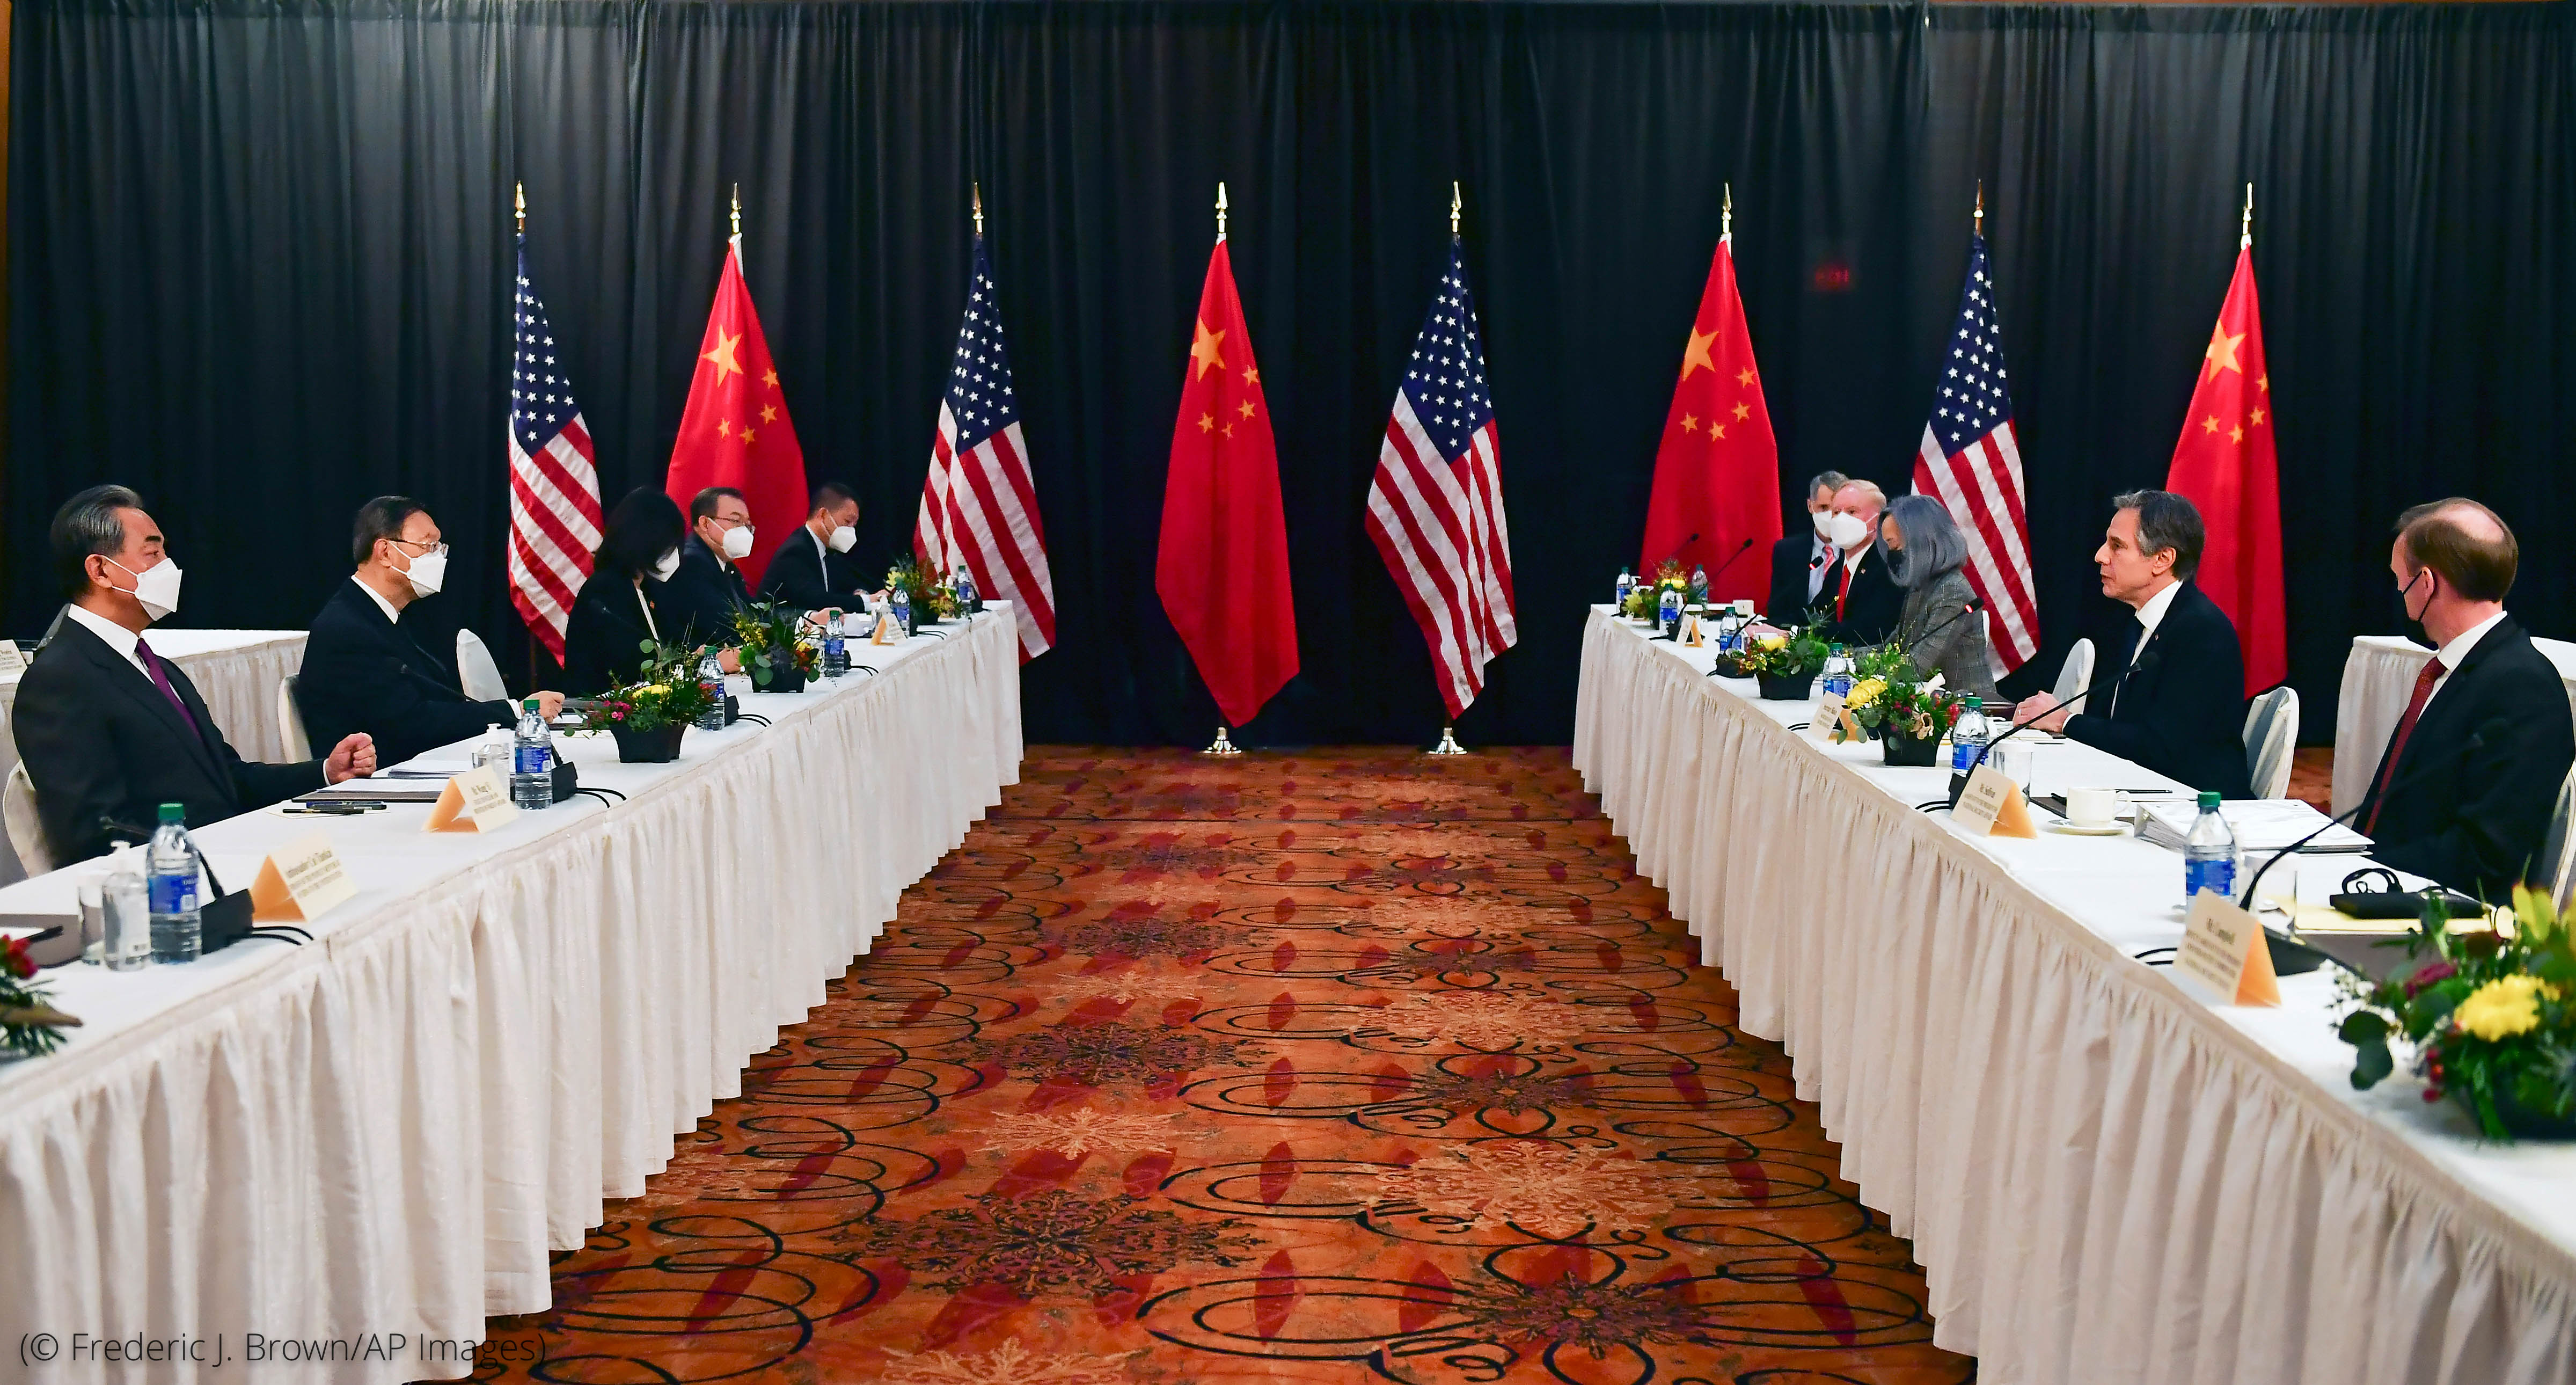 Men sitting at two long, facing tables with white tablecloths, with line of U.S. and Chinese flags at one end (© Frederic J. Brown/AP Images)